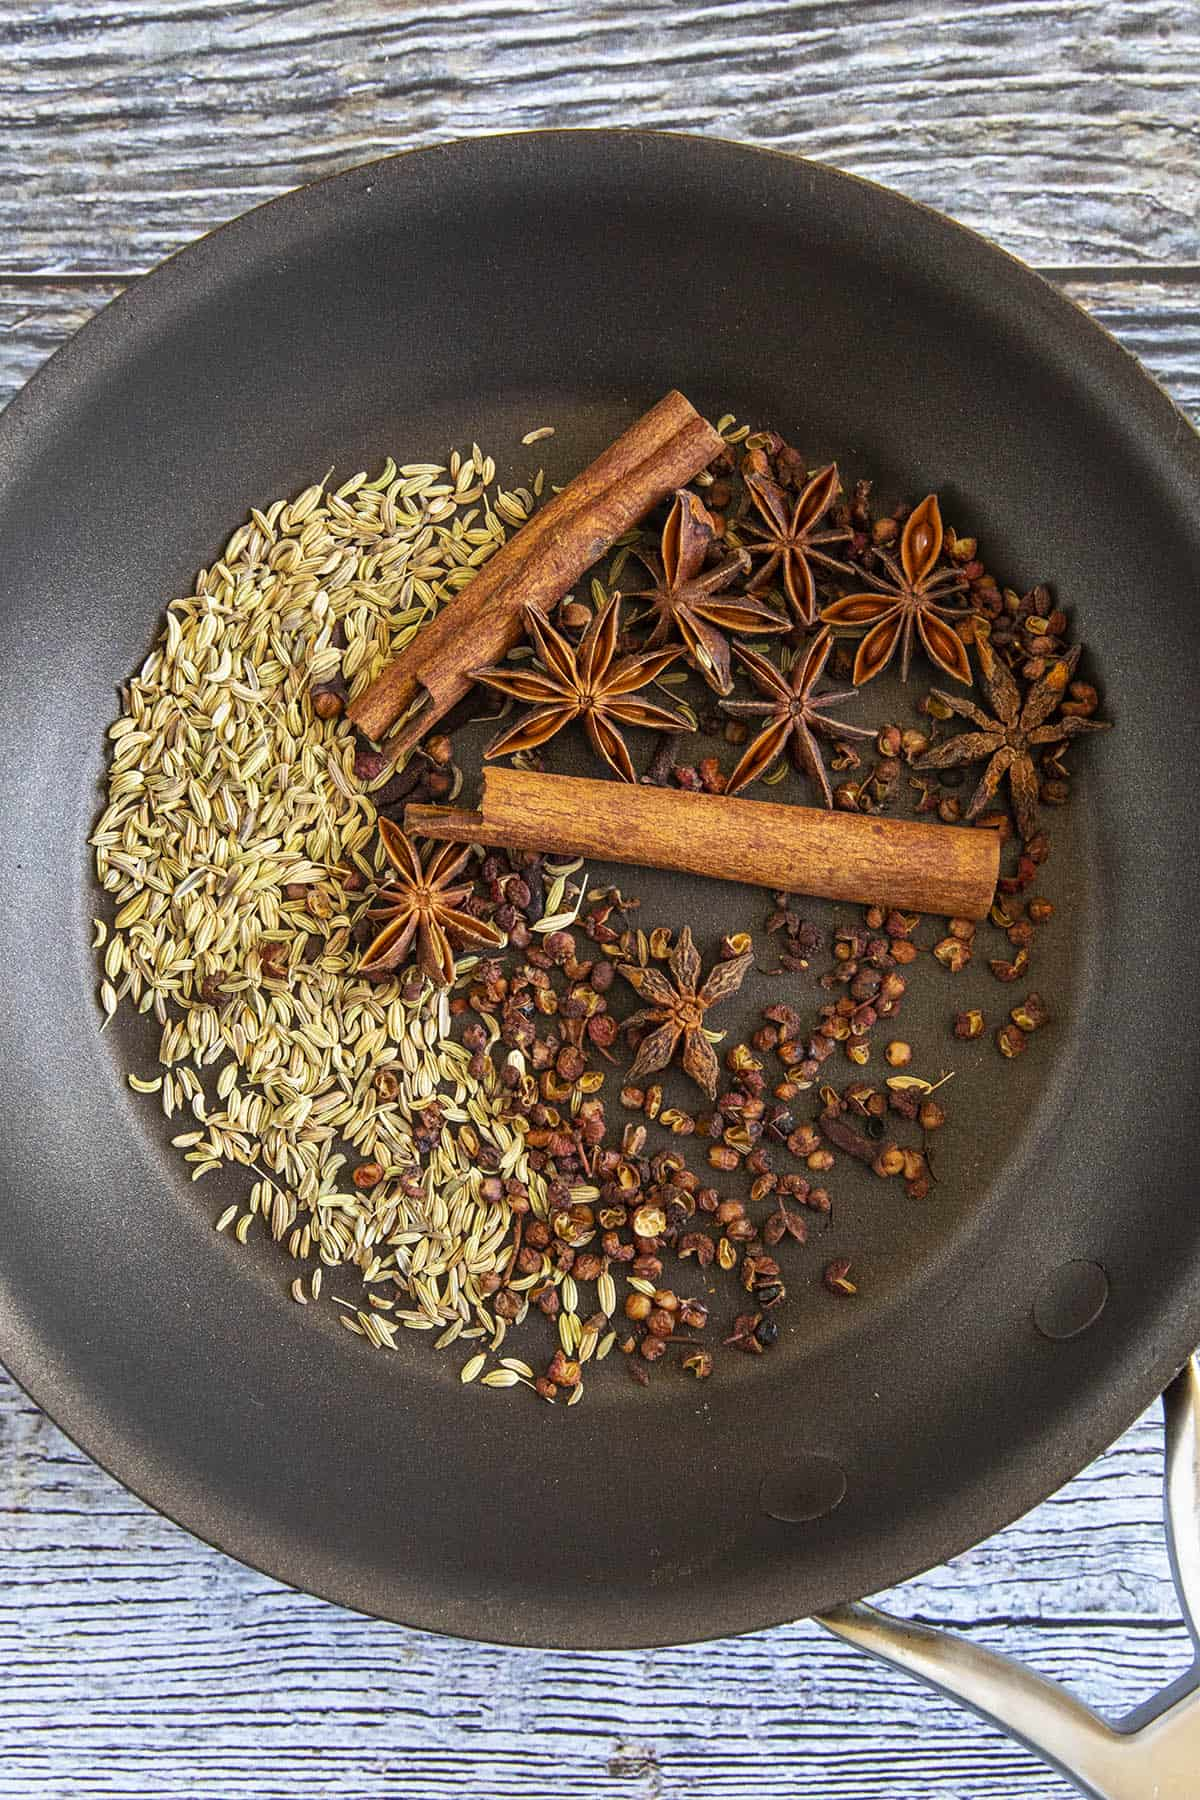 Toasting Chinese 5 Spice ingredients